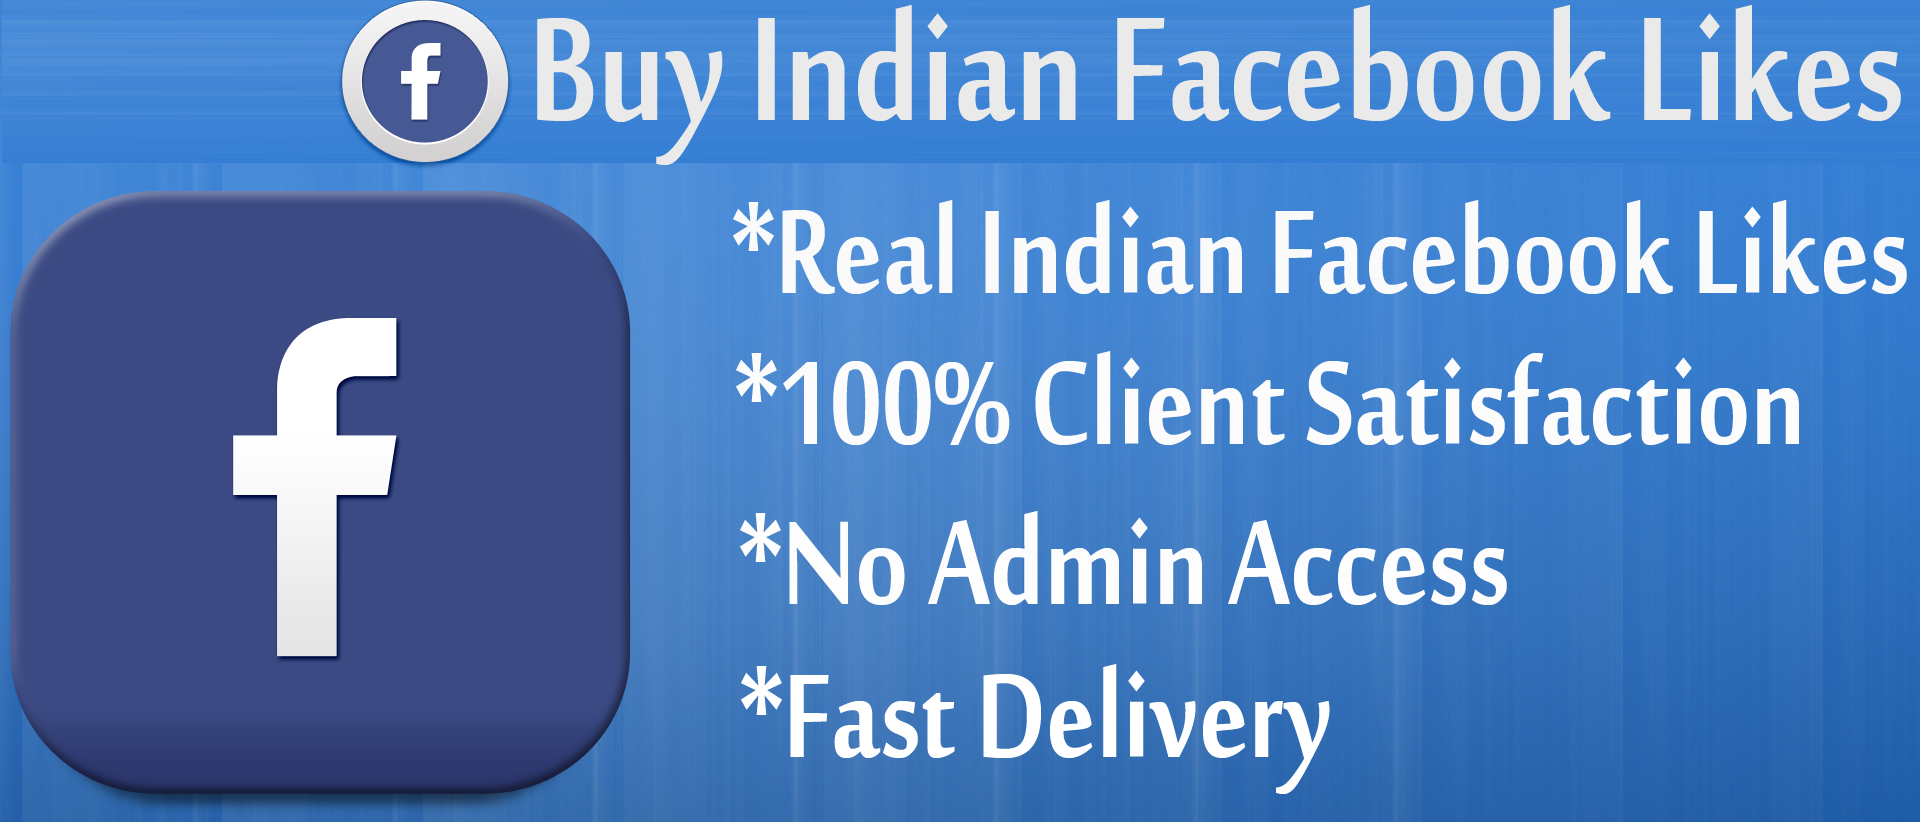 1000 Indian Facebook Page / Post Likes